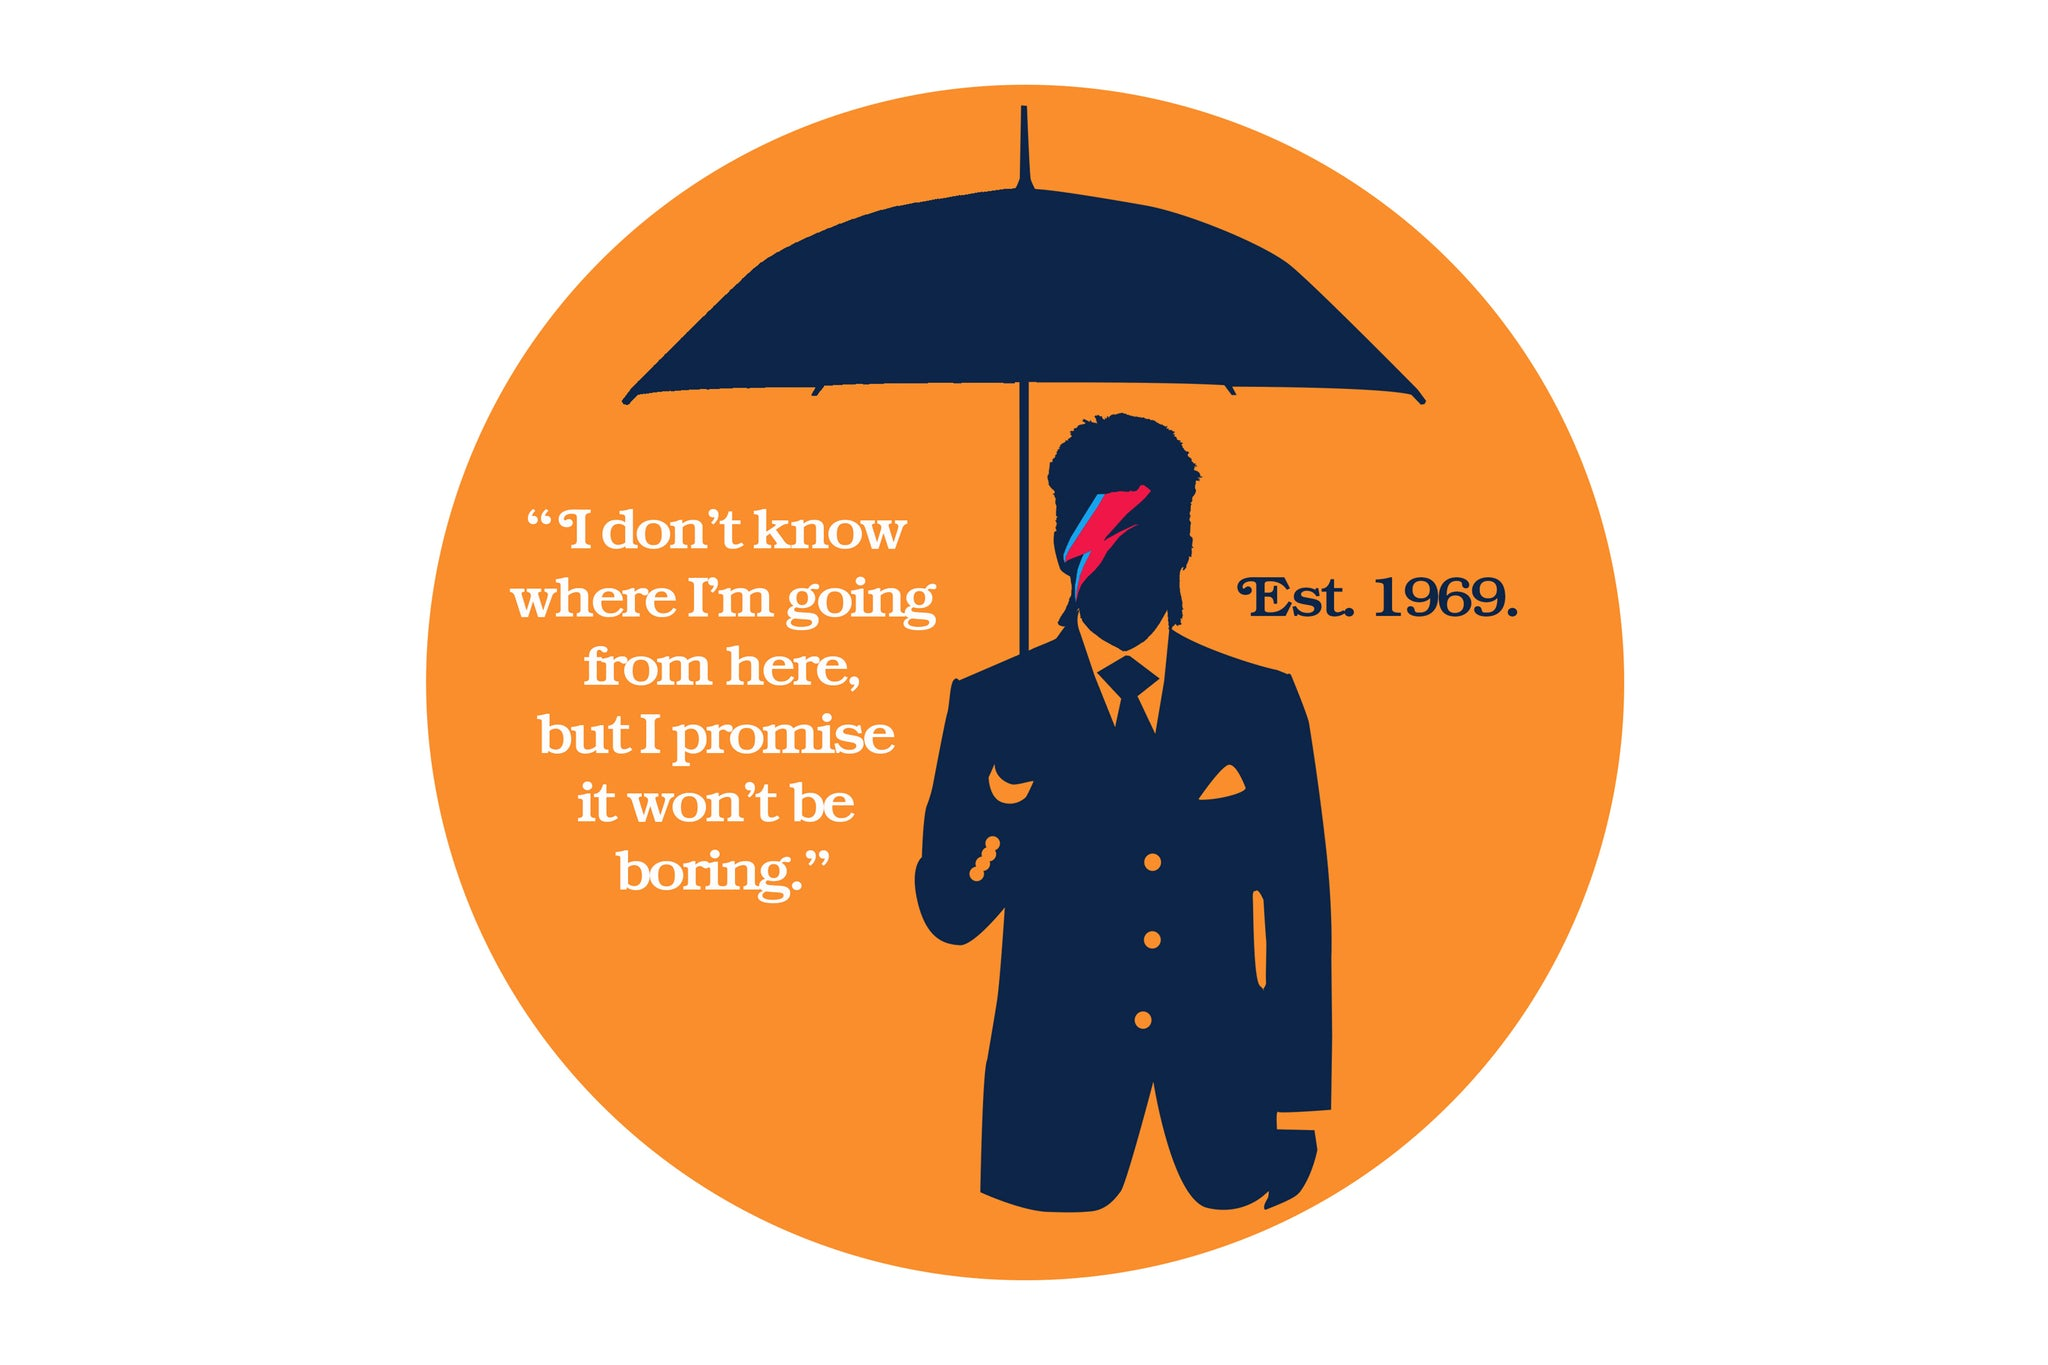 """Illustration of a man holding an umbrella with a painted face and the quote """"I don't know where I'm going from here, but I promise it won't be boring"""" Established 1969."""